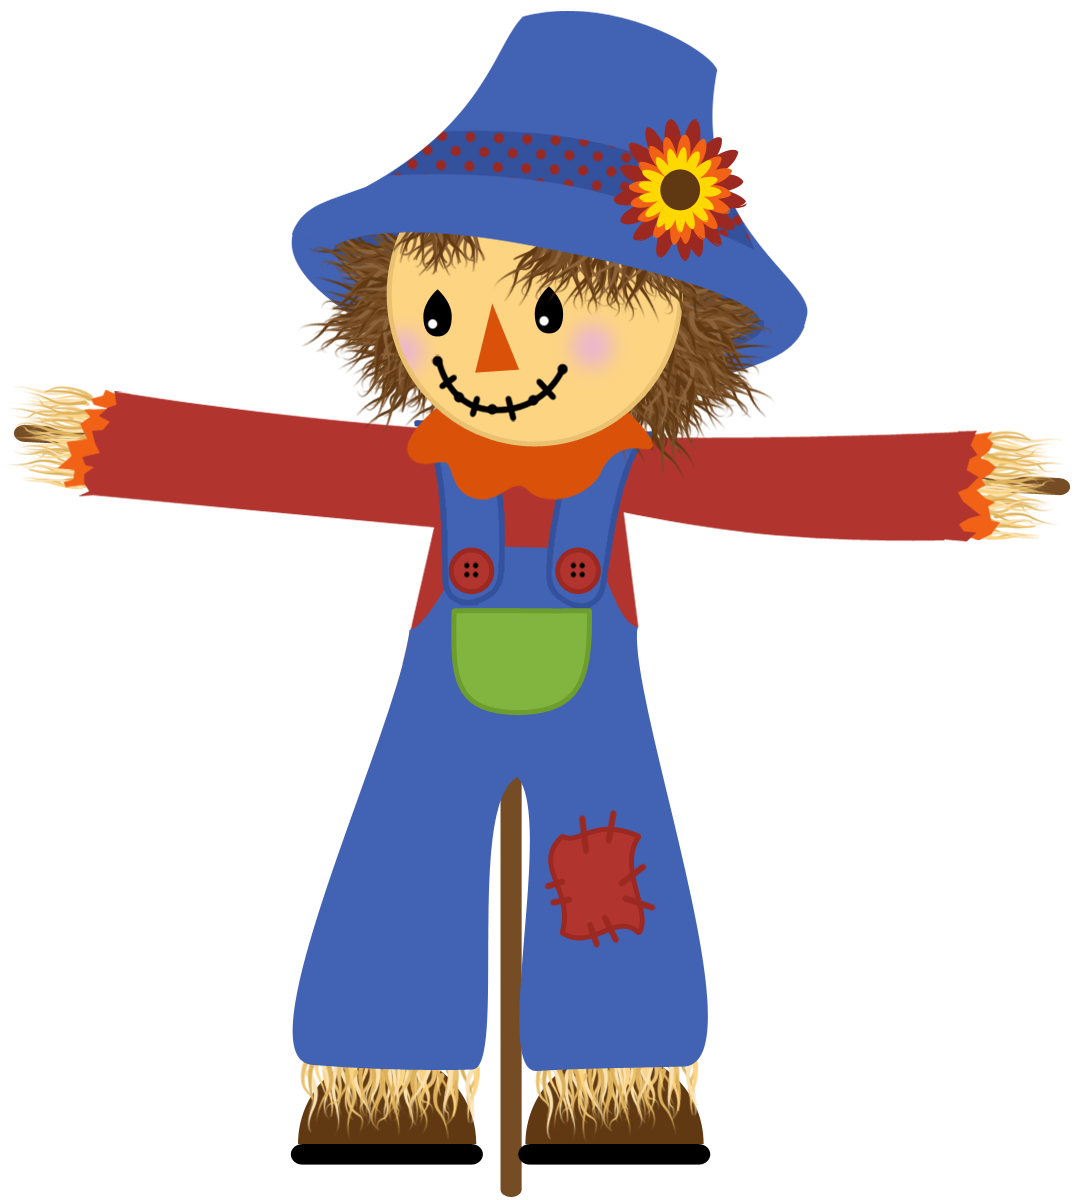 scarecrow clipart google search signage pinterest scarecrows rh pinterest com scarecrow clipart free scarecrow clipart free